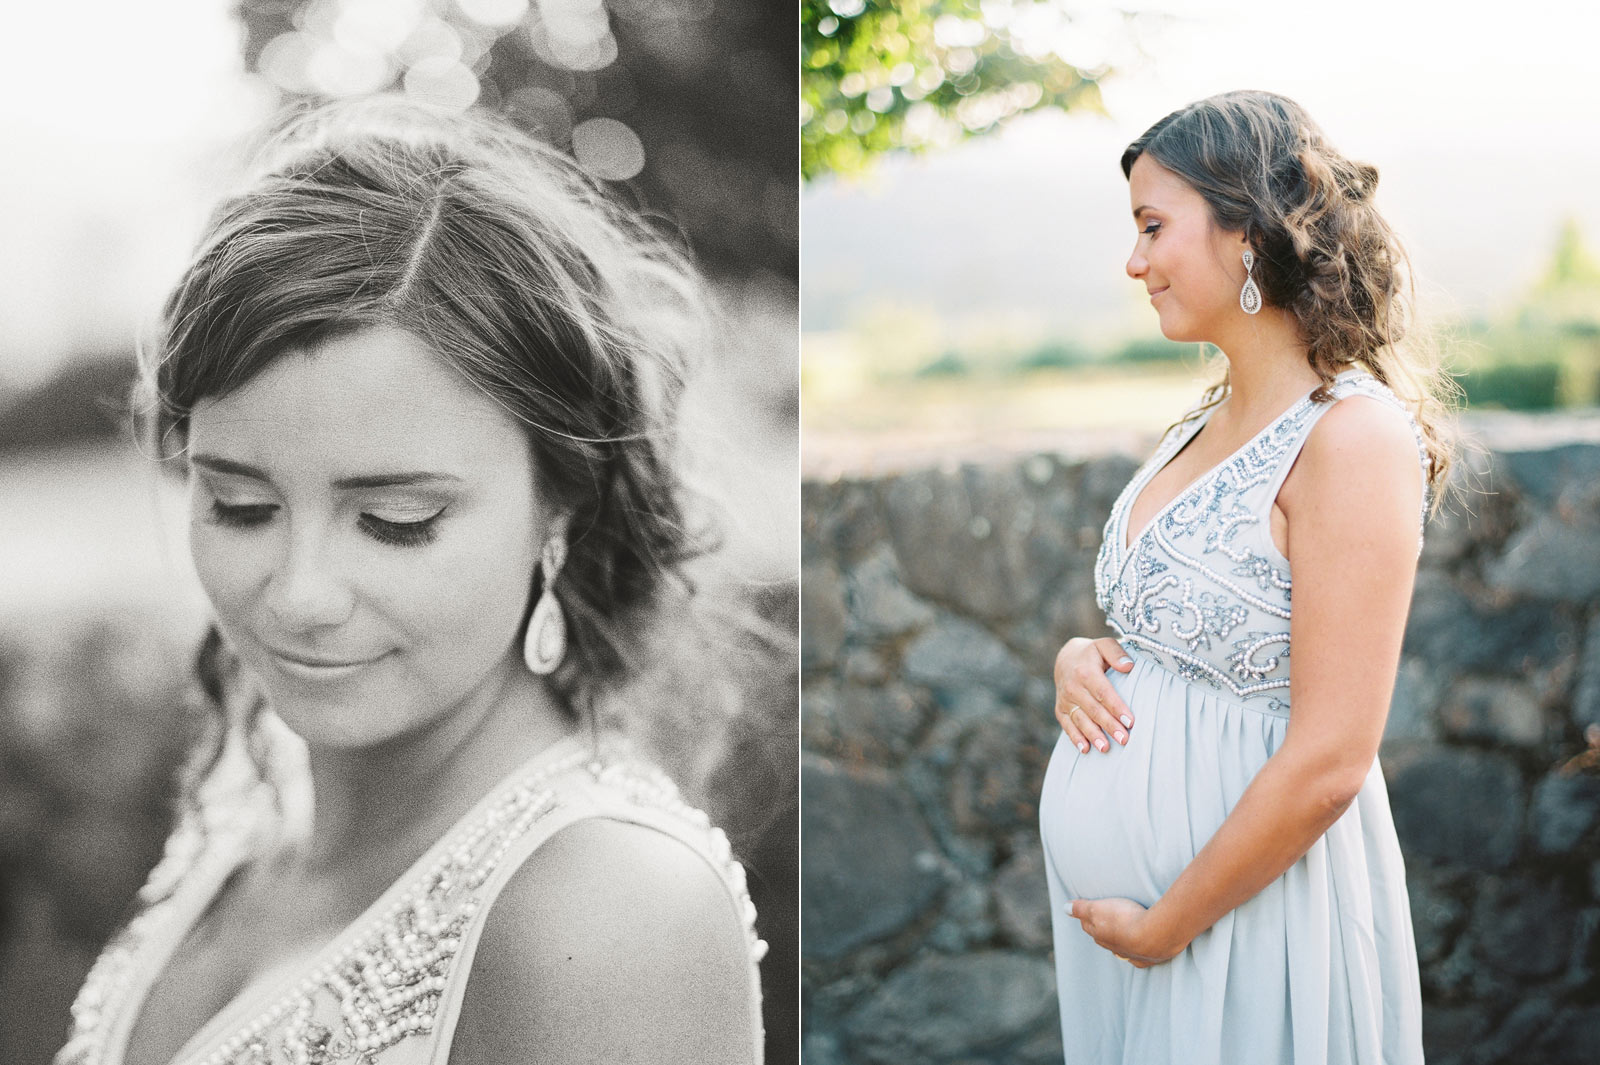 Sonoma maternity photographer